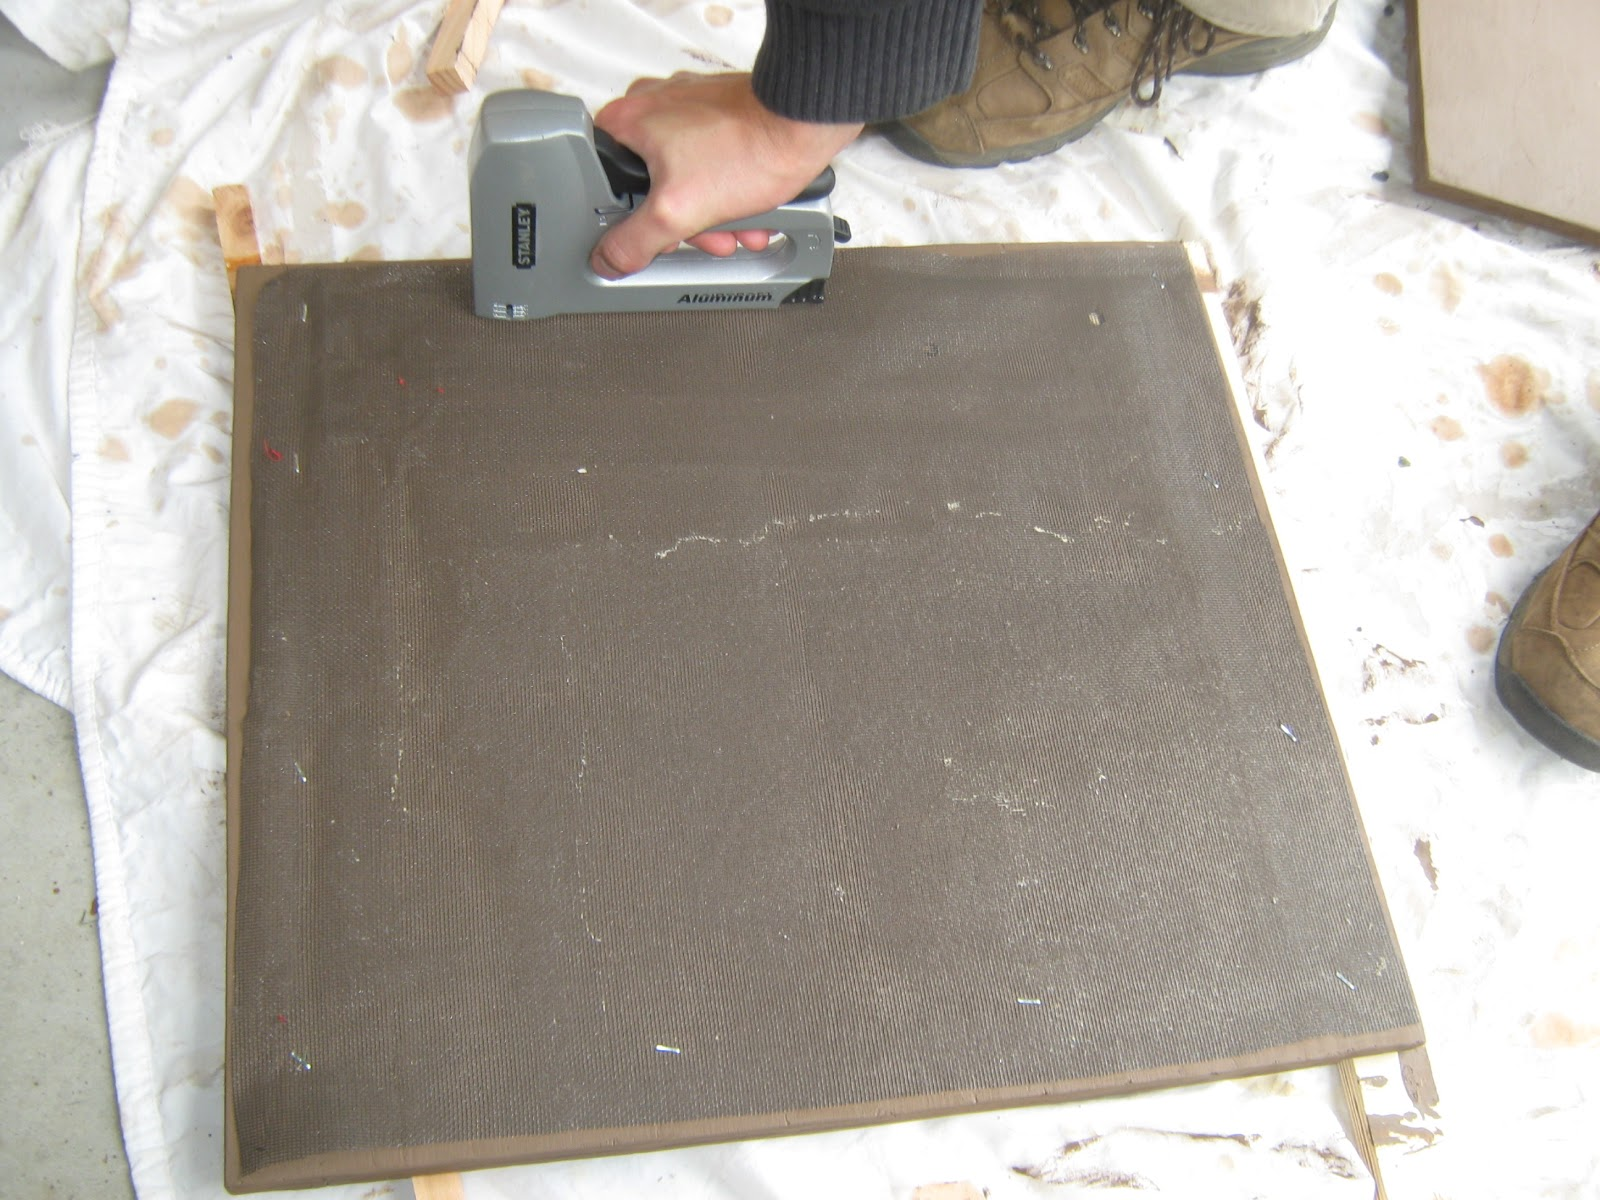 Staple Plastic Screen Or Cut Grooves On The Back Board Do Not Use Metal Because It Will Rust Over Time Gives Bats